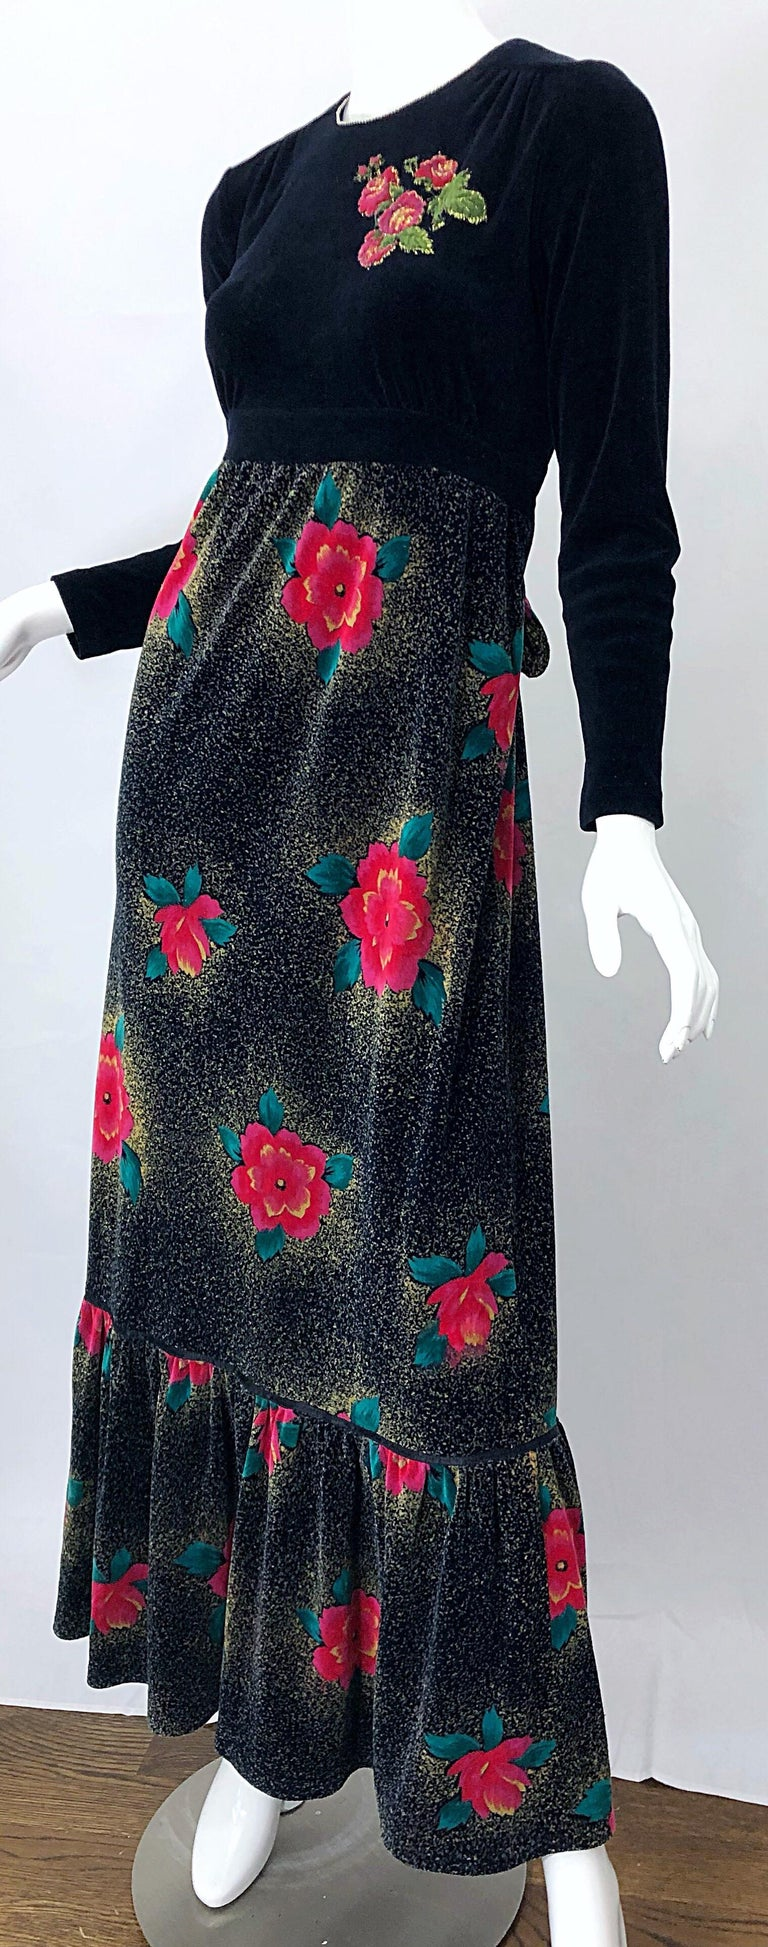 1970s Poinsettia Print Embroidered Beaded Velvet Velour Holiday Maxi Dress Gown For Sale 8